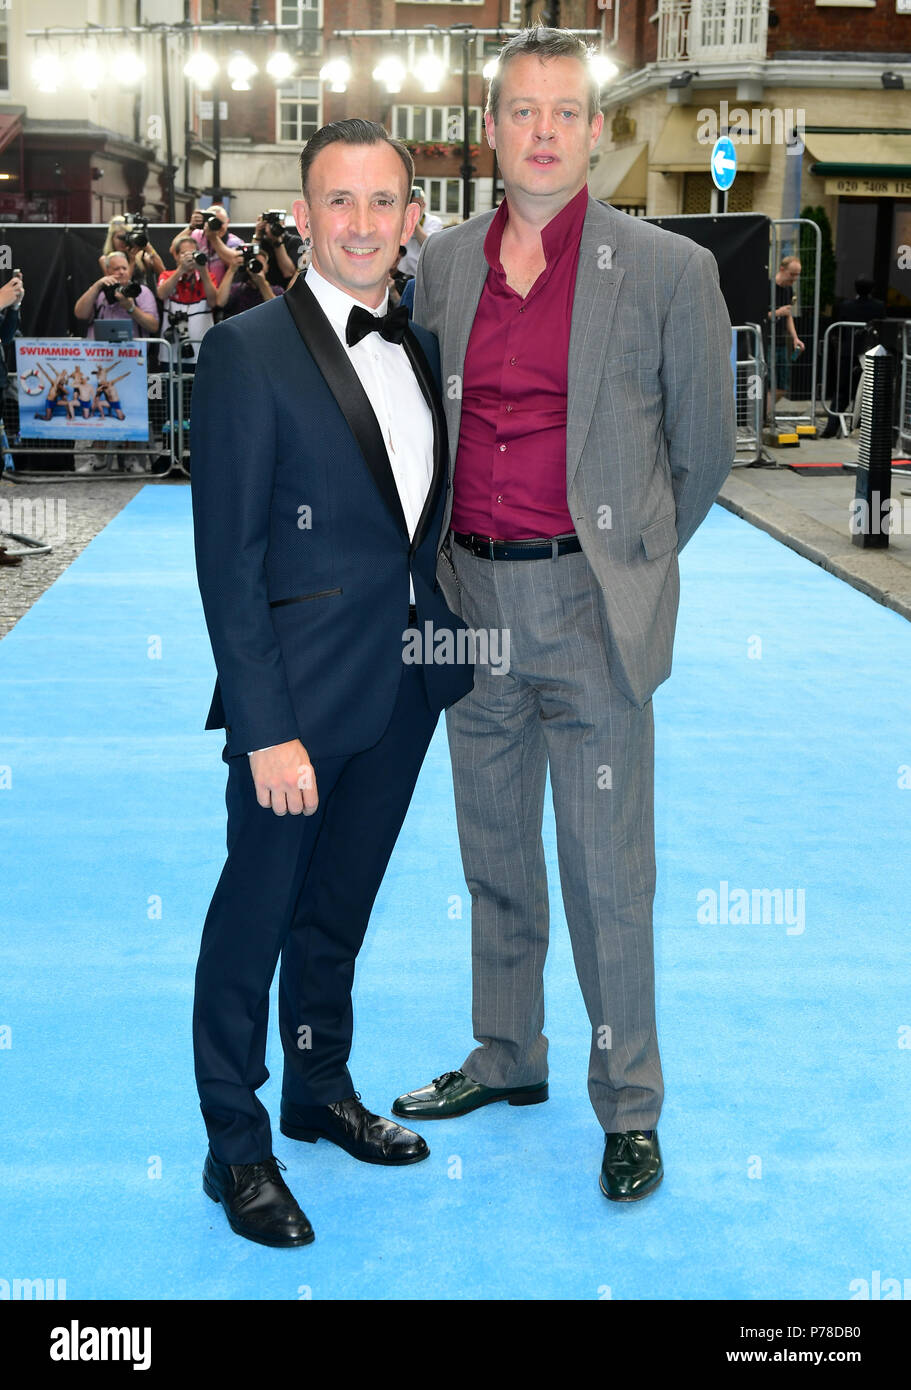 Chris Jepson and Ronan Daly attending the Swimming with Men premiere ...